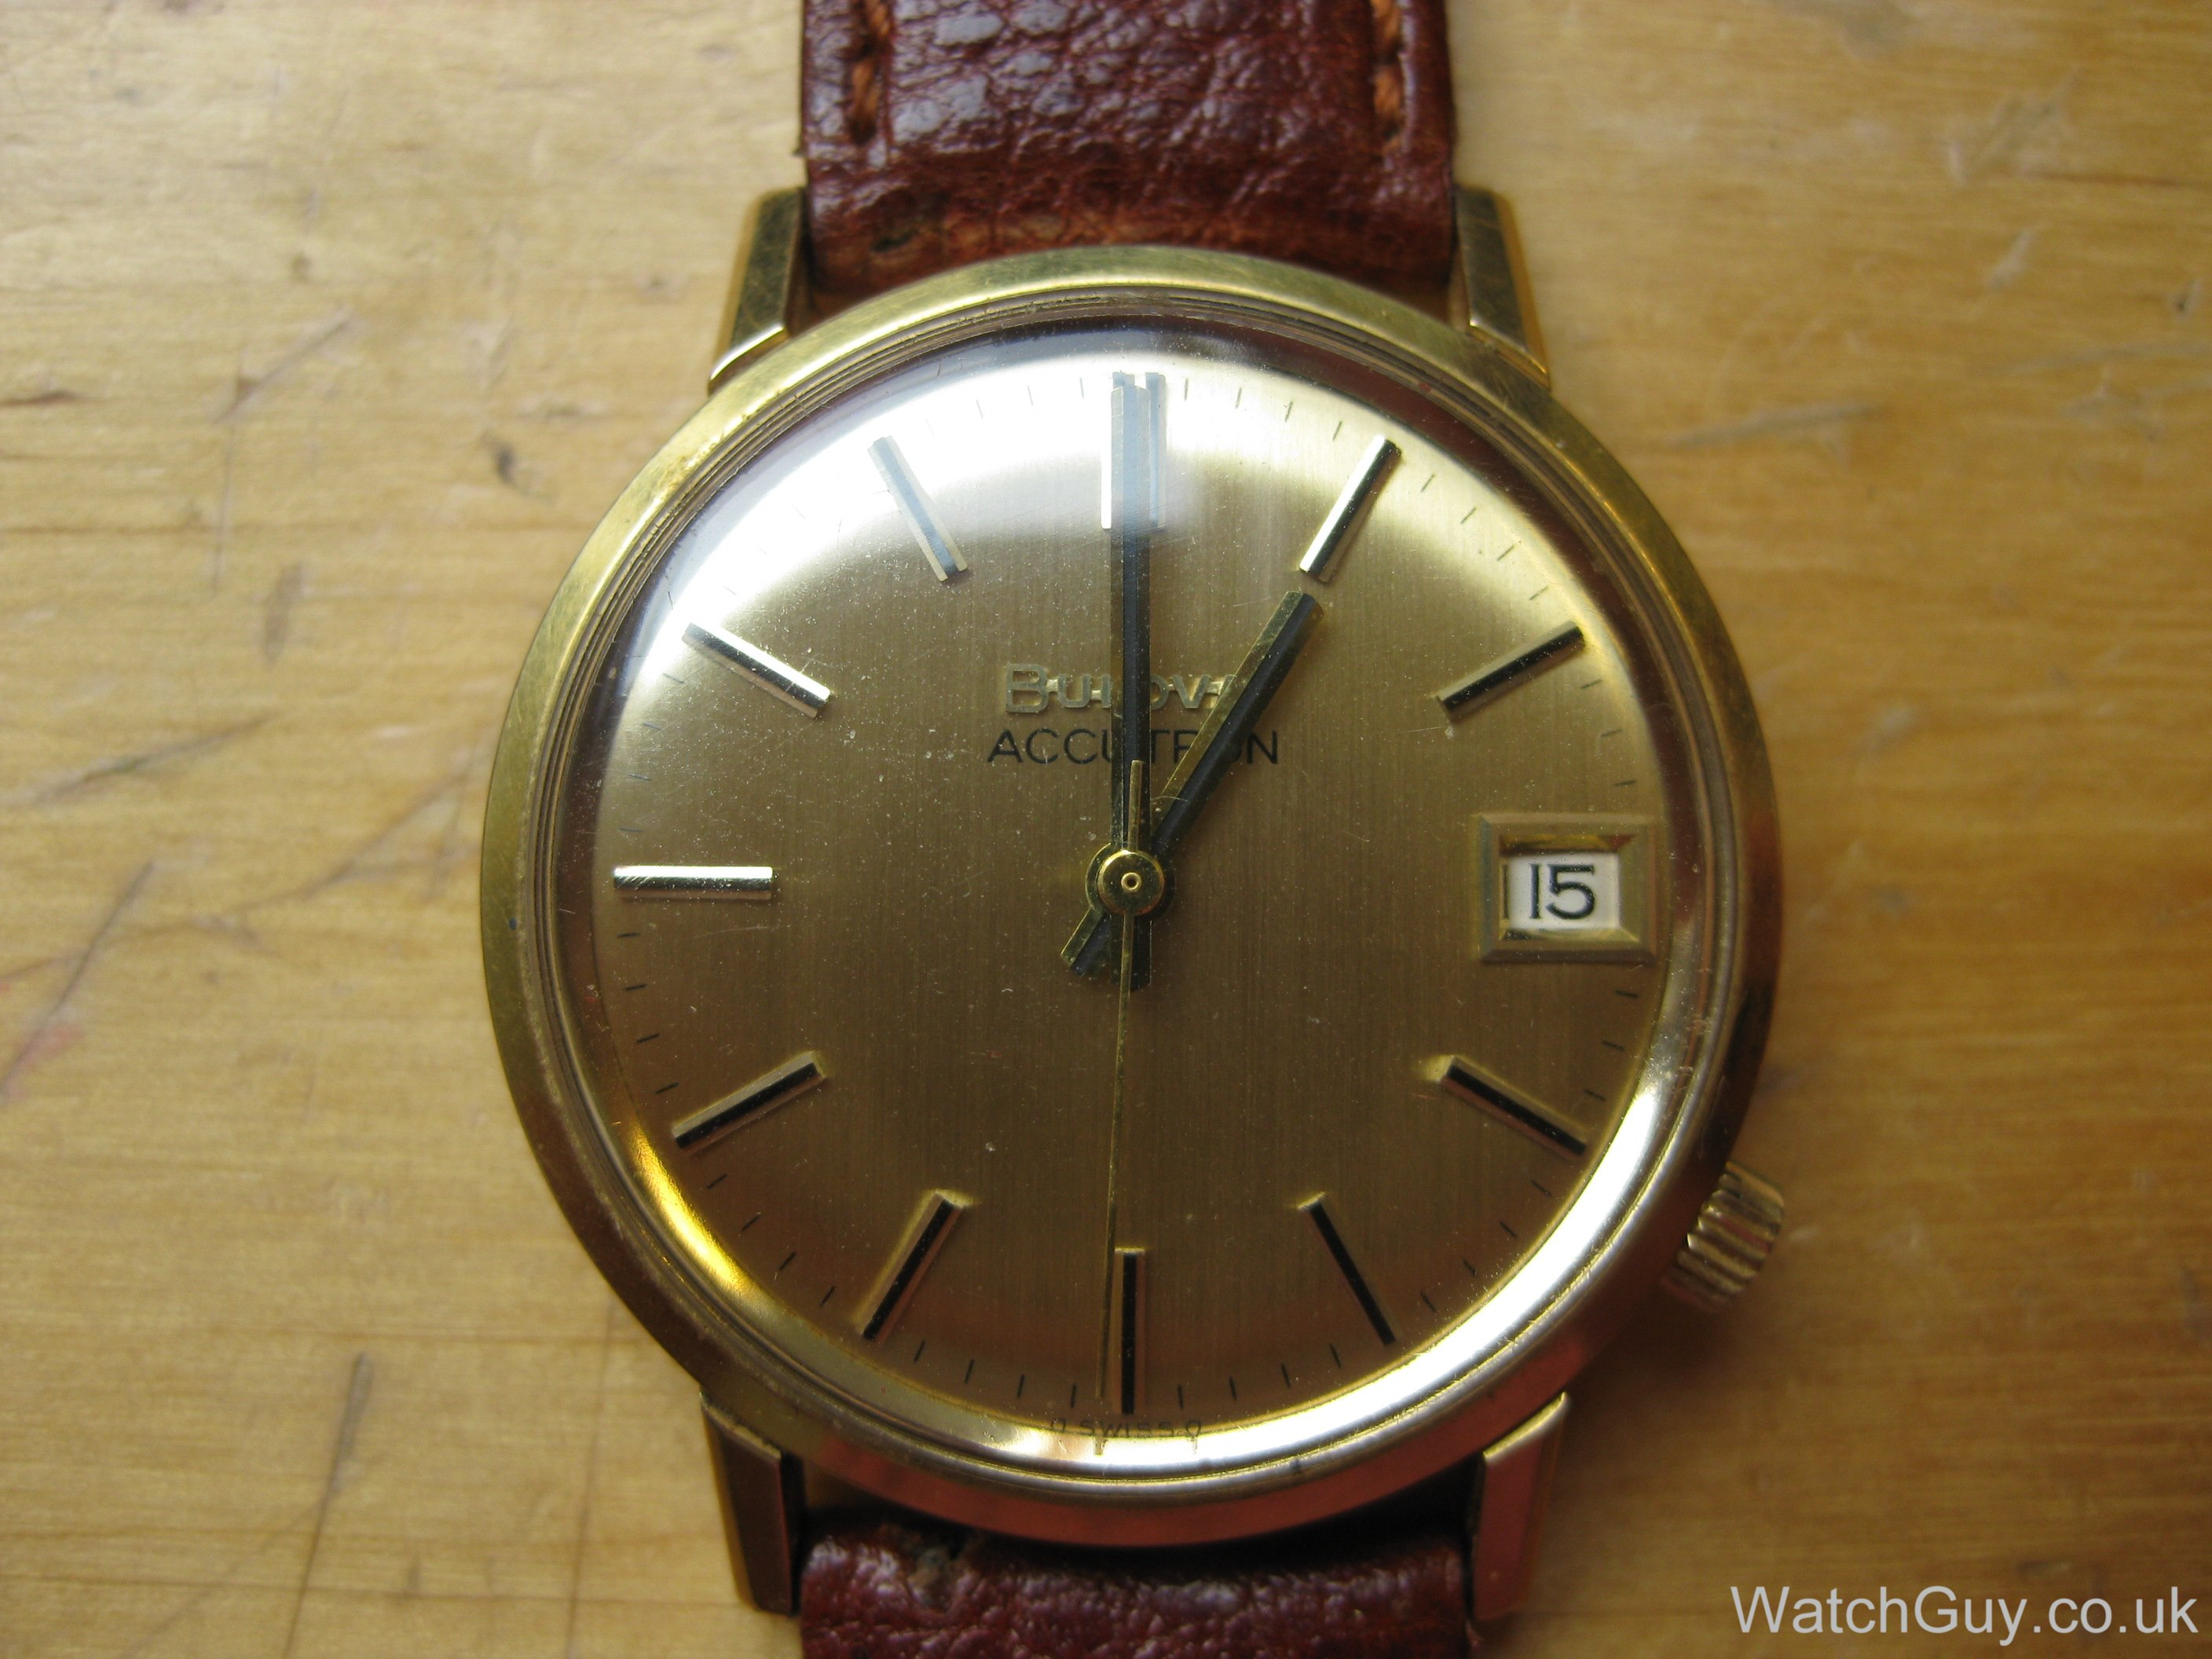 Teardown Bulova Accutron 218 Watch Guy Vintage Diagram Together With Parts Didnt Invent The Use Of Tuning Forks To Measure Time But They Were First Ones Pack Technology Into A Wrist